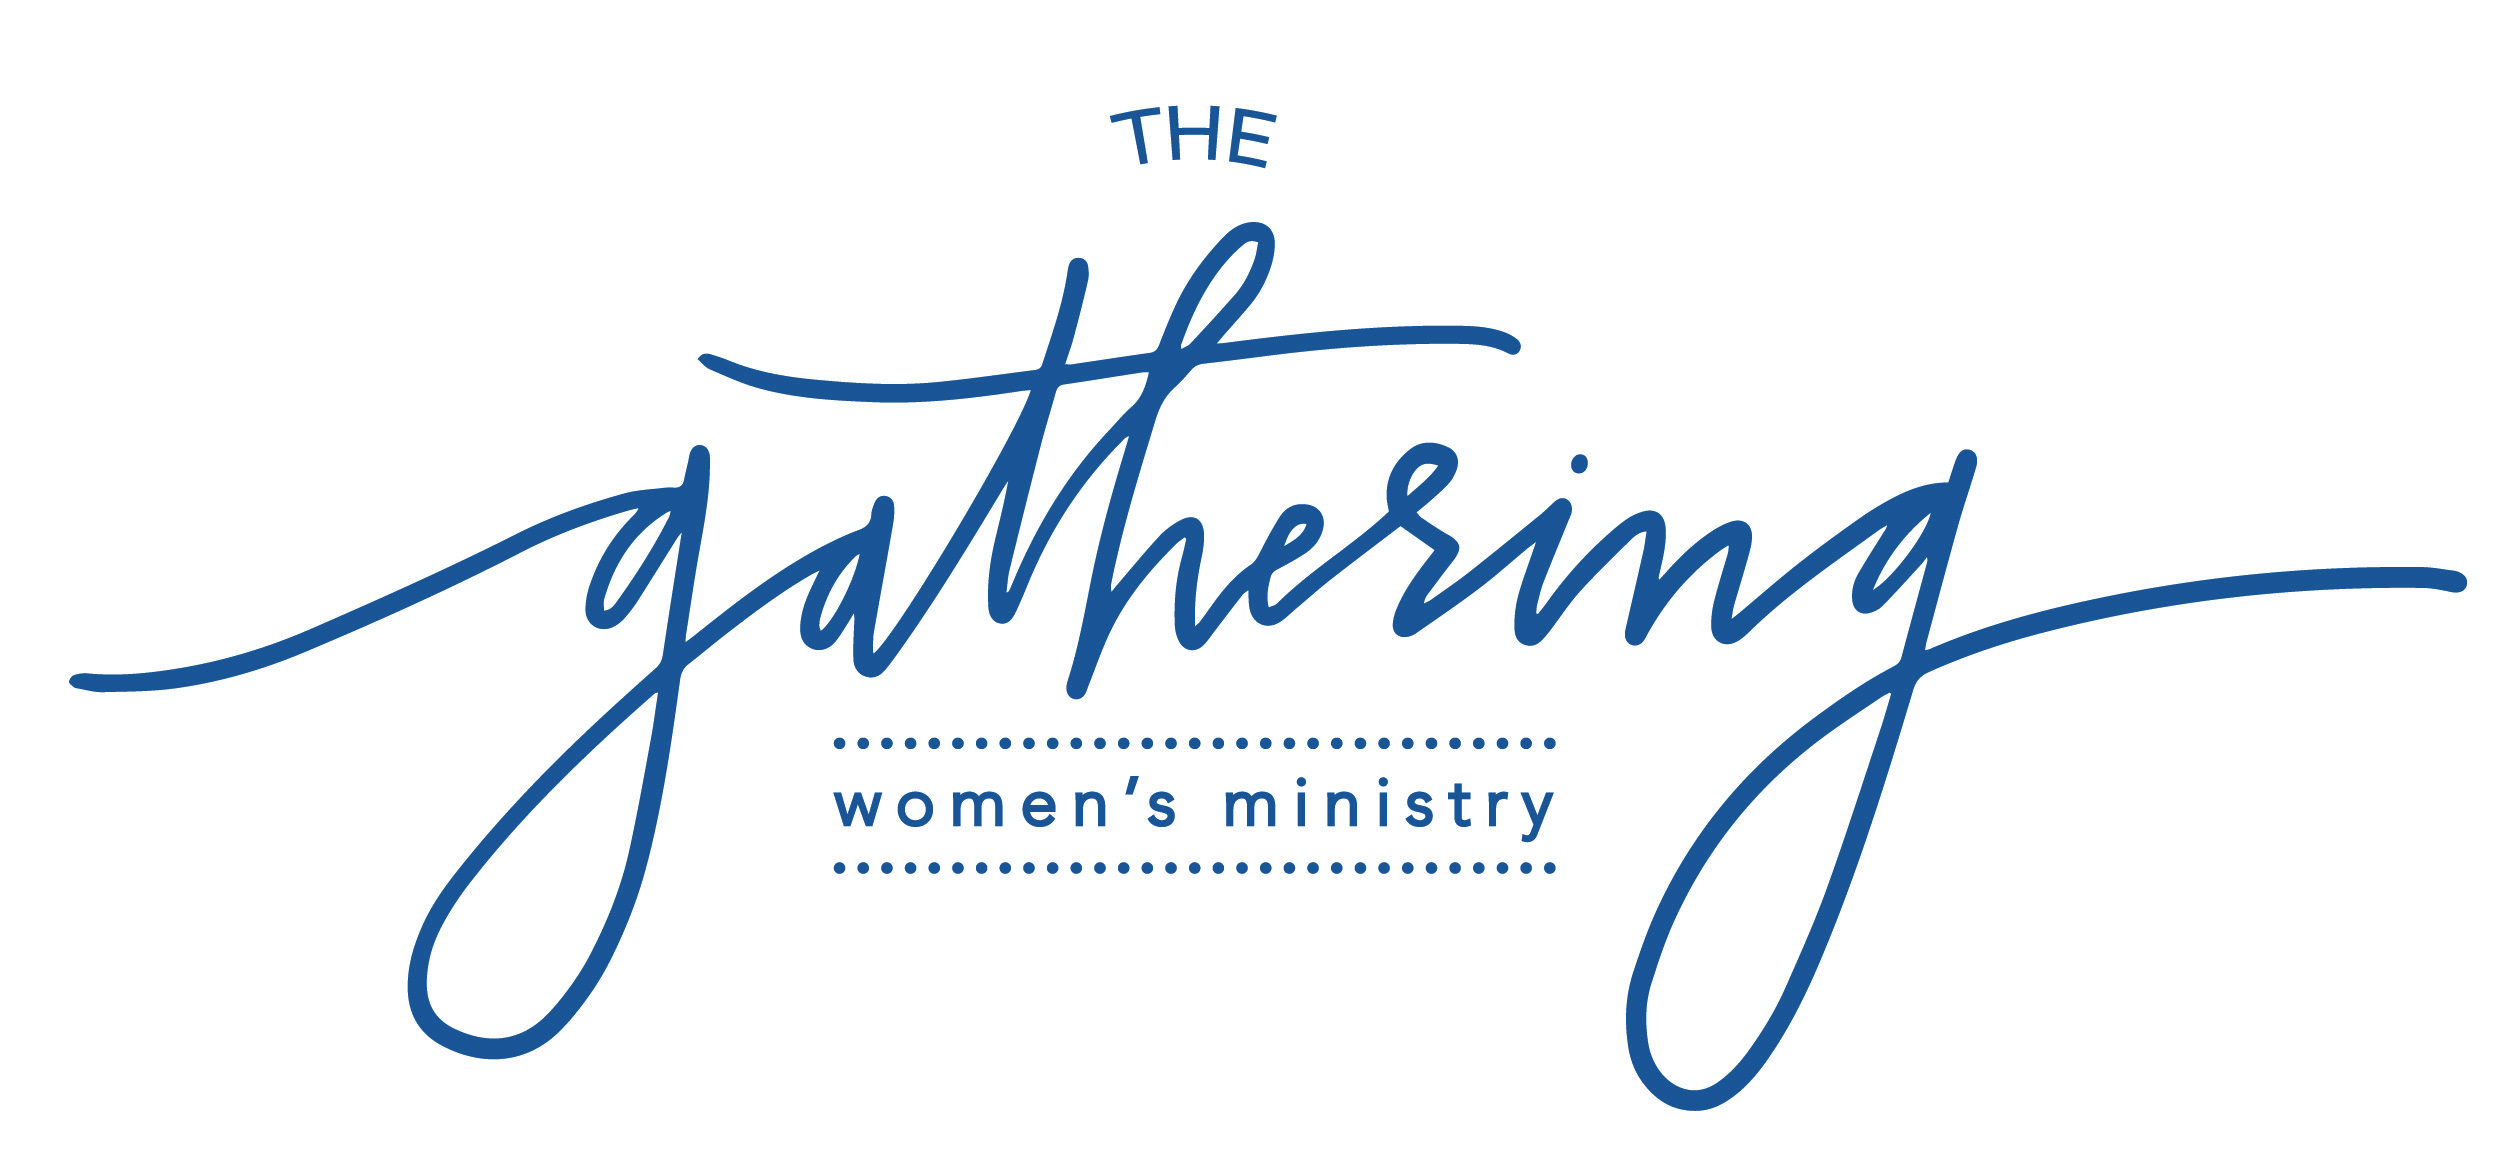 The gathering logo 2017